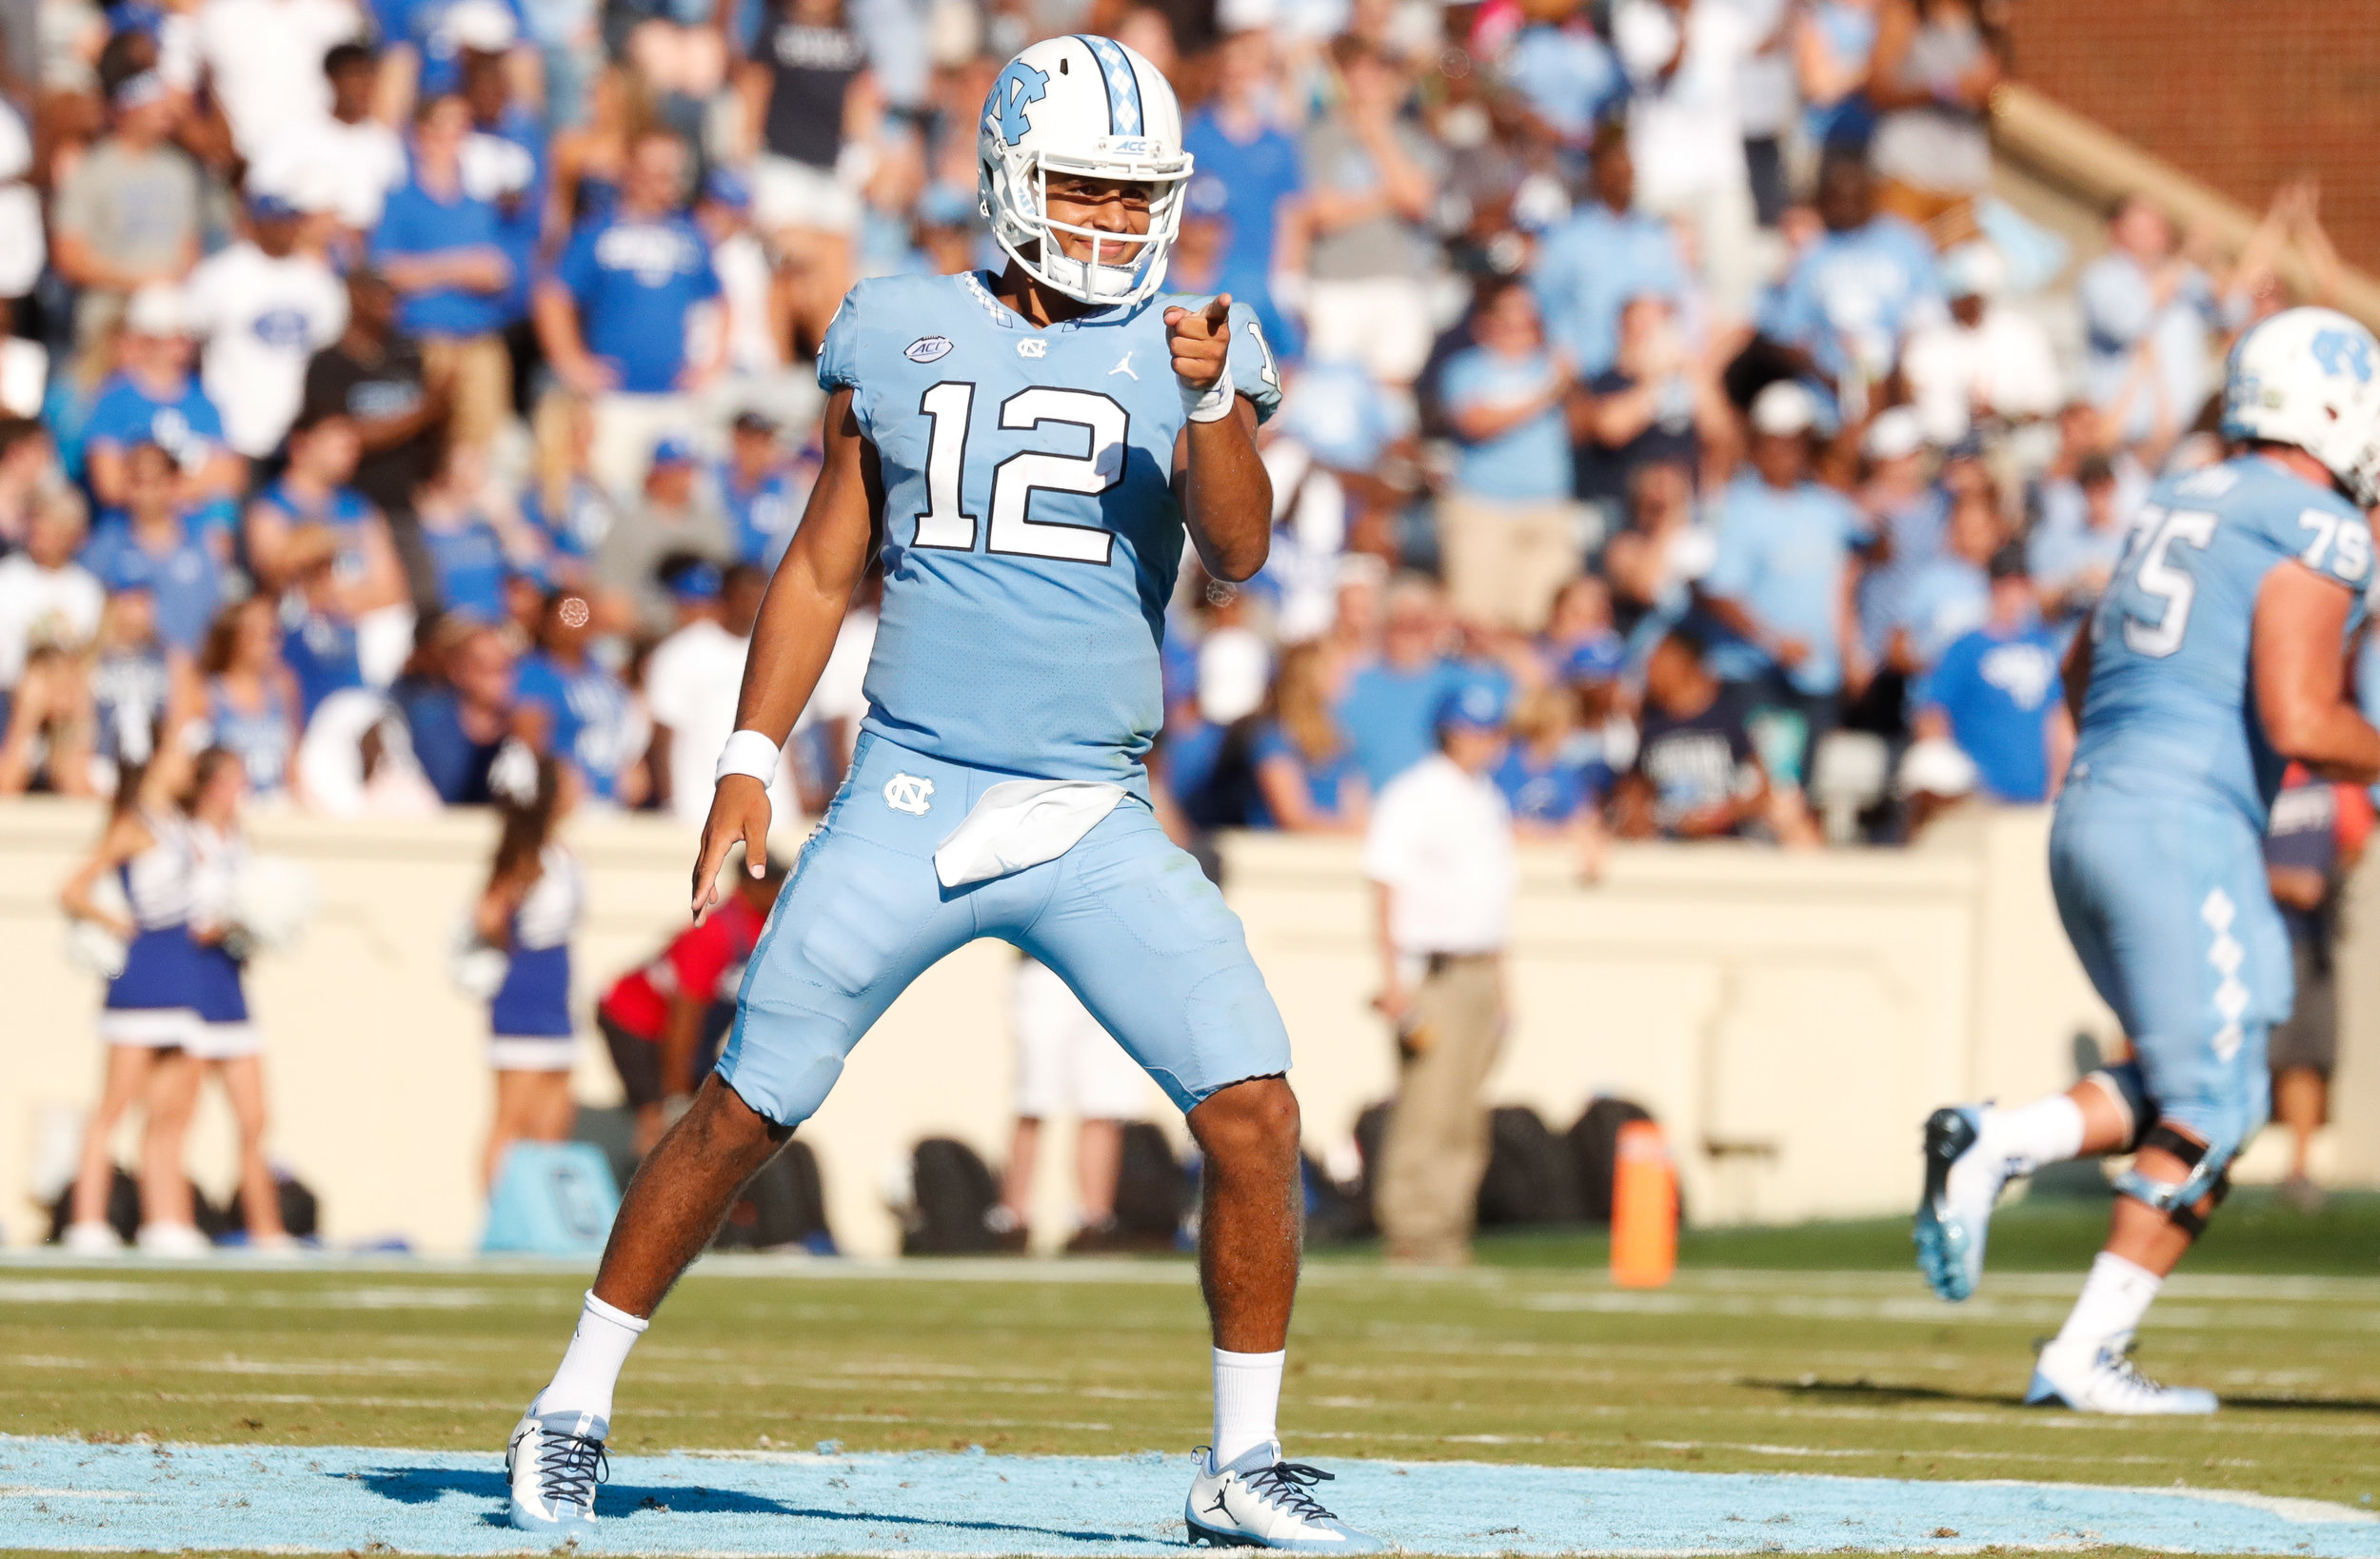 Chazz Surratt (12) set career highs in passing yards (259) and rushing yards (77). But it's the extra plays he tried to make that cost UNC against Duke.